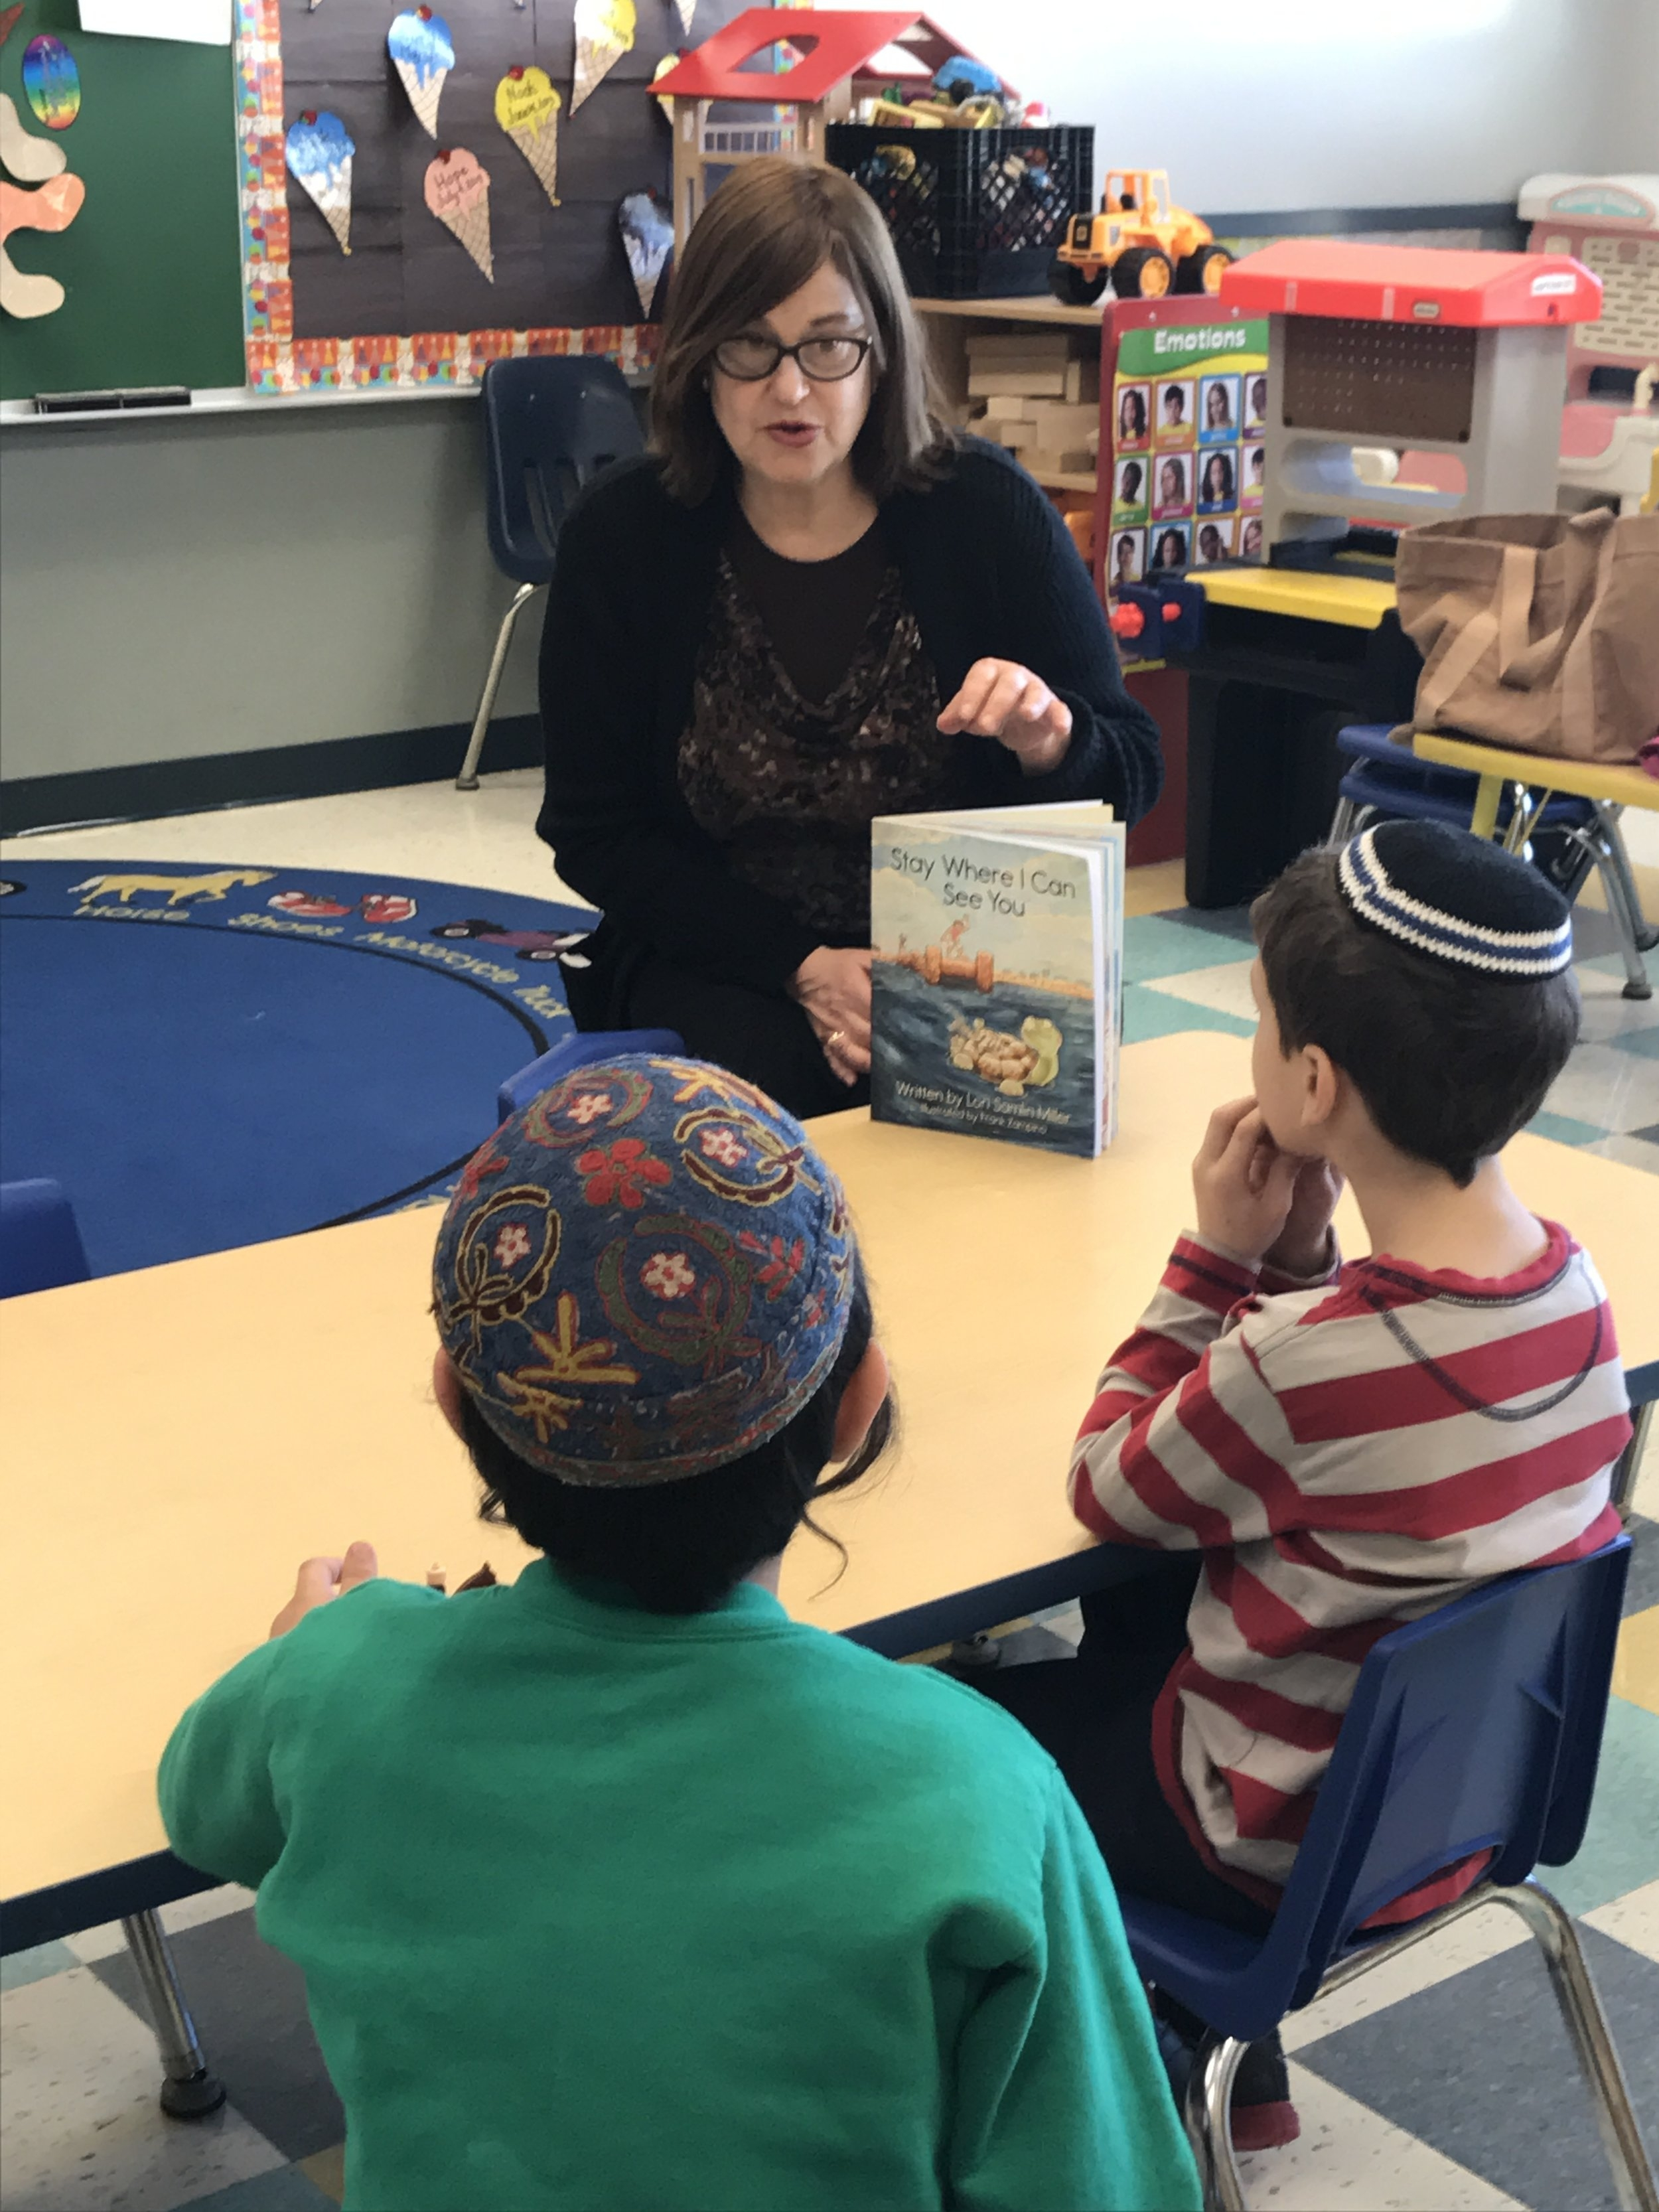 Katz JCC Cherry Hill     On April 2, 2017 I was invited to read  Stay Where I Can See You  during two sessions at the ABC Jr program. The students wrote stories and did crafts.